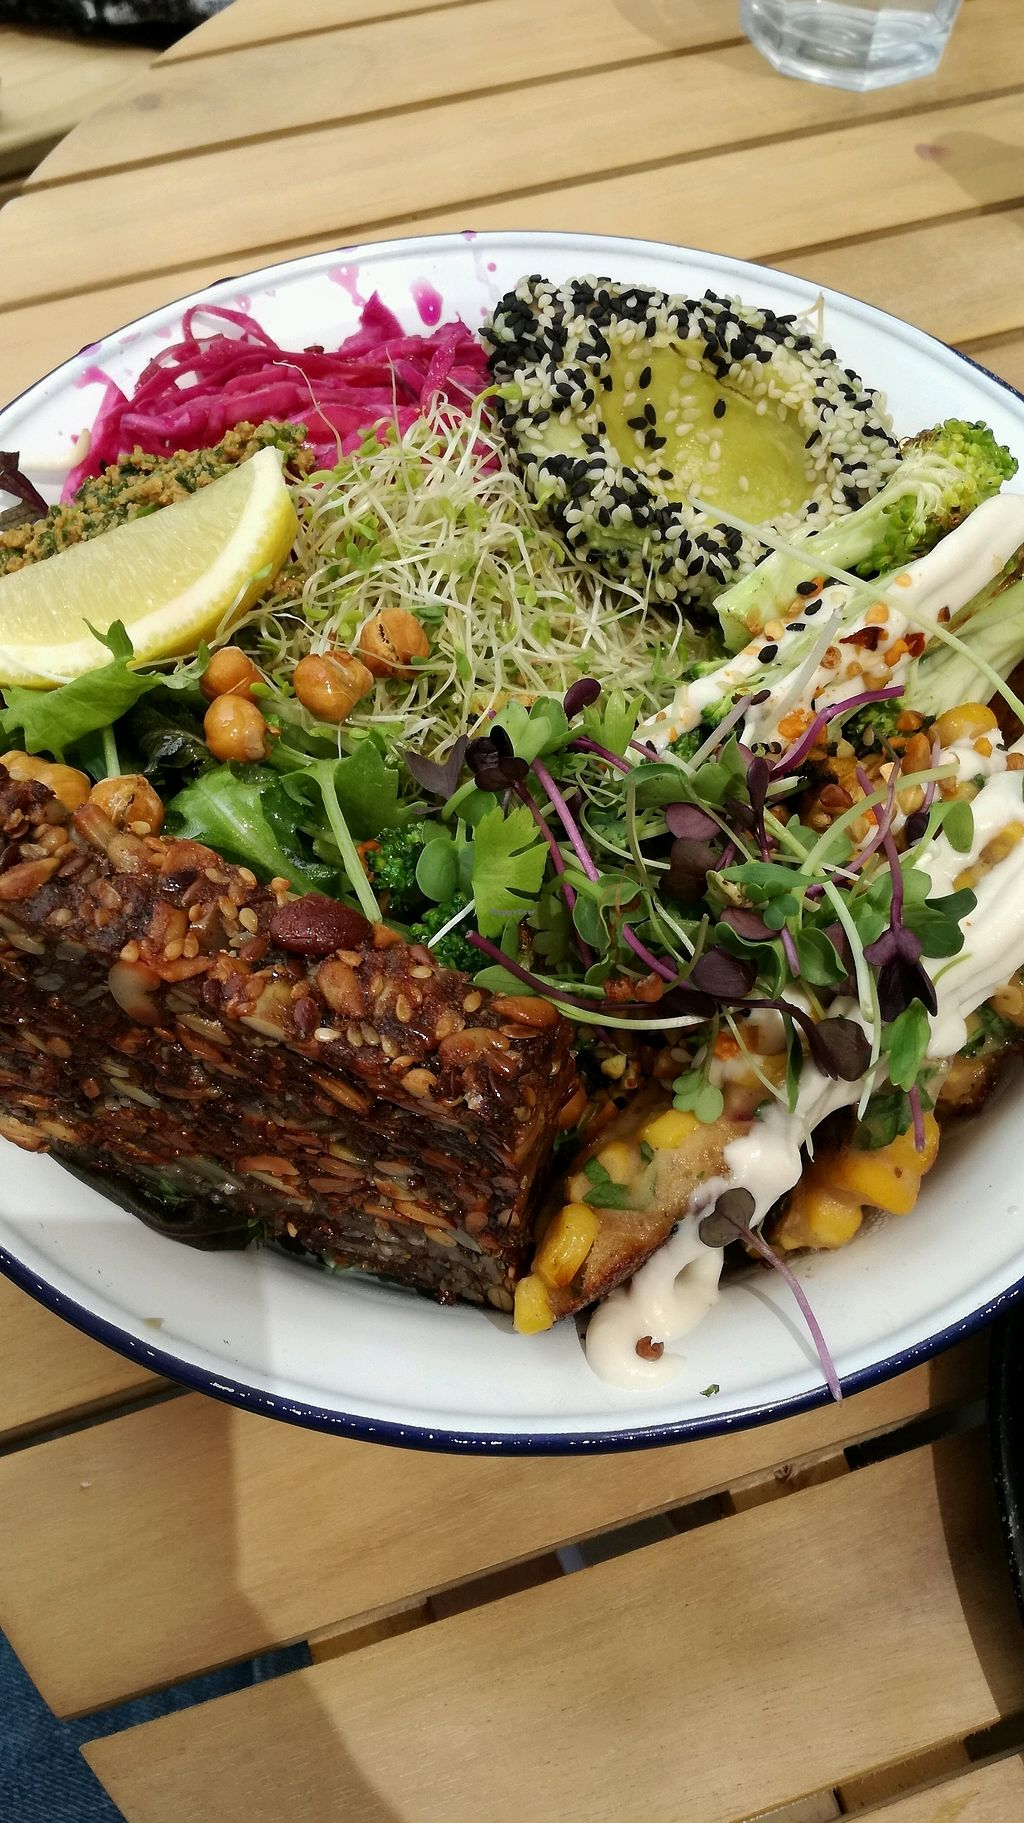 """Photo of Wild One Wholefoods Eatery   by <a href=""""/members/profile/evajelen"""">evajelen</a> <br/>Suumer Wild Bowl with extra seed loaf <br/> January 19, 2018  - <a href='/contact/abuse/image/78133/348198'>Report</a>"""